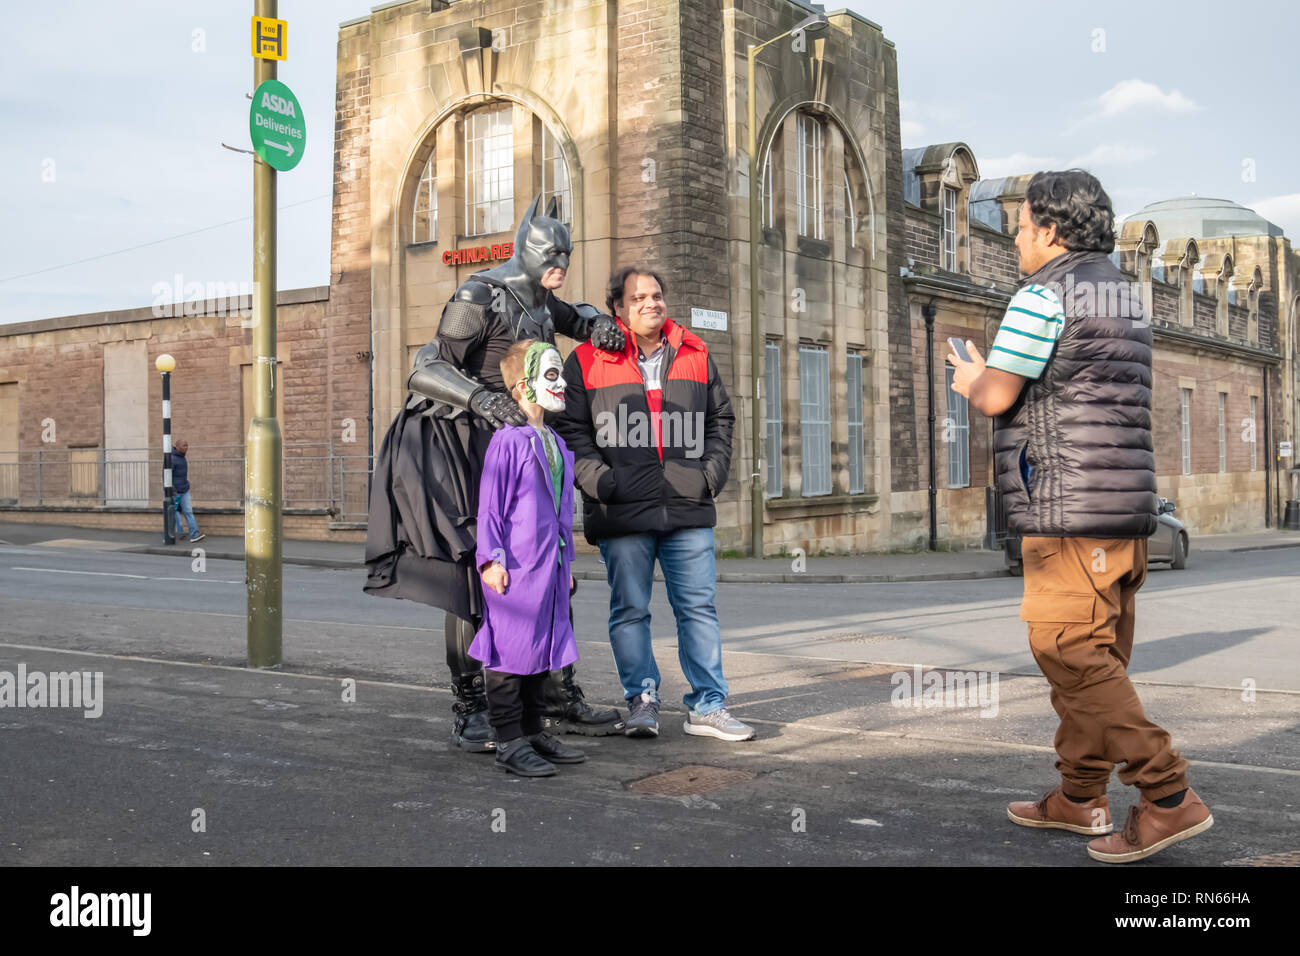 Edinburgh, Scotland, UK. 17th February, 2019. A cosplayer dressed as the fictional superhero Batman alongside the supervillain The Joker from the comic books published by DC Comics arriving on day three of the Capital Sci-Fi Con held at the Edinburgh Corn Exchange. Credit: Skully/Alamy Live News - Stock Image